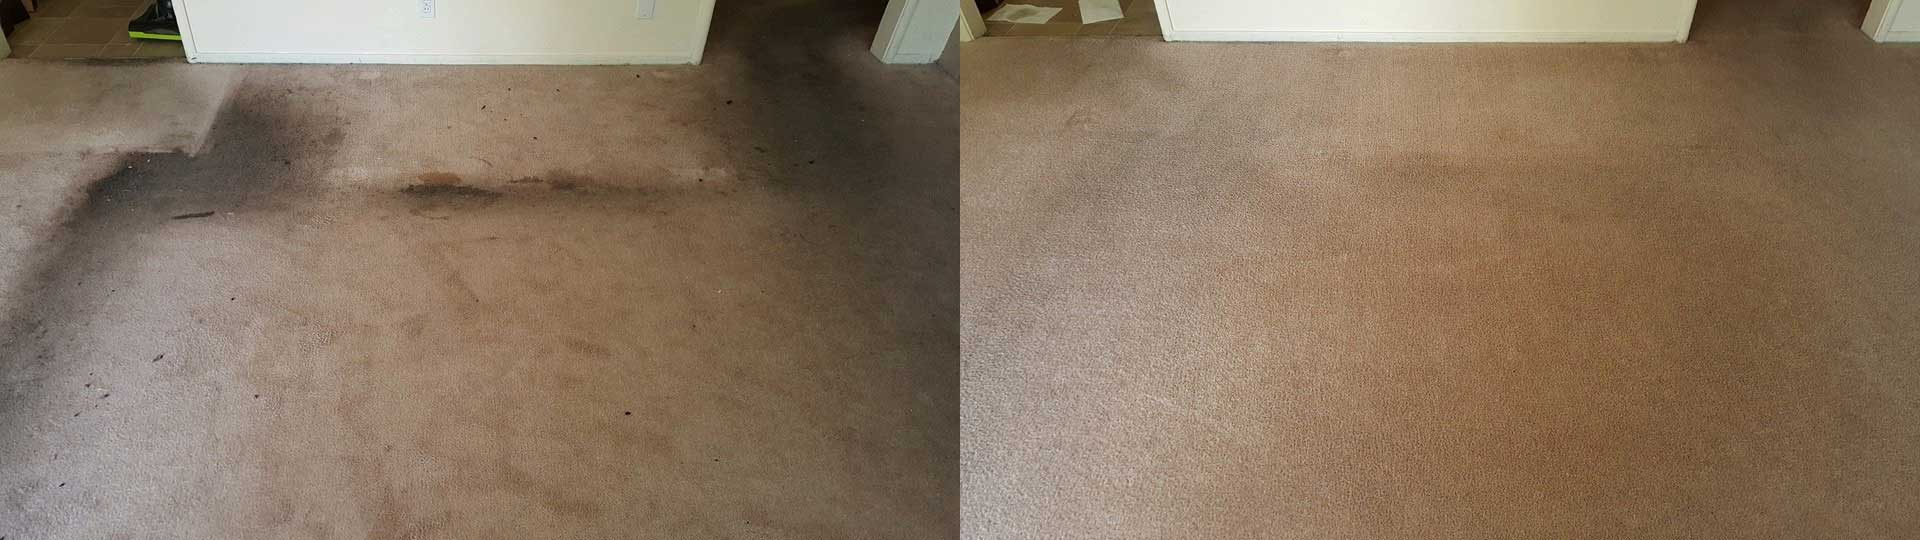 carpet cleaning Granite Bay CA